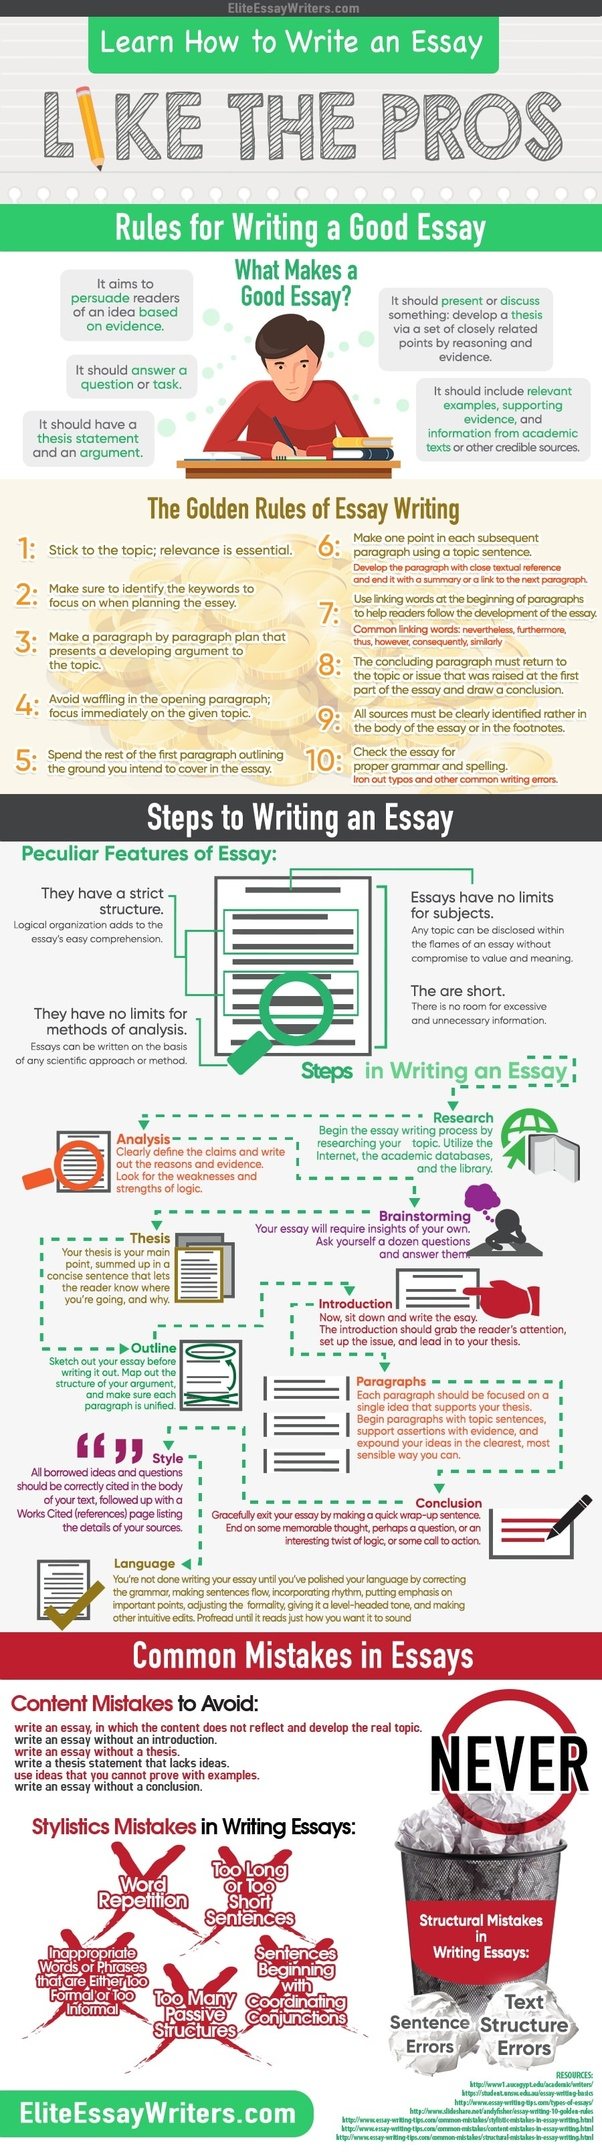 need help editing my essay We believe in leaving comments, feedback, and explanations because our goal isn't just to edit your essay--we want to help you become a better writer in the process when you edit my essay, will you actually edit it or just give suggestions.